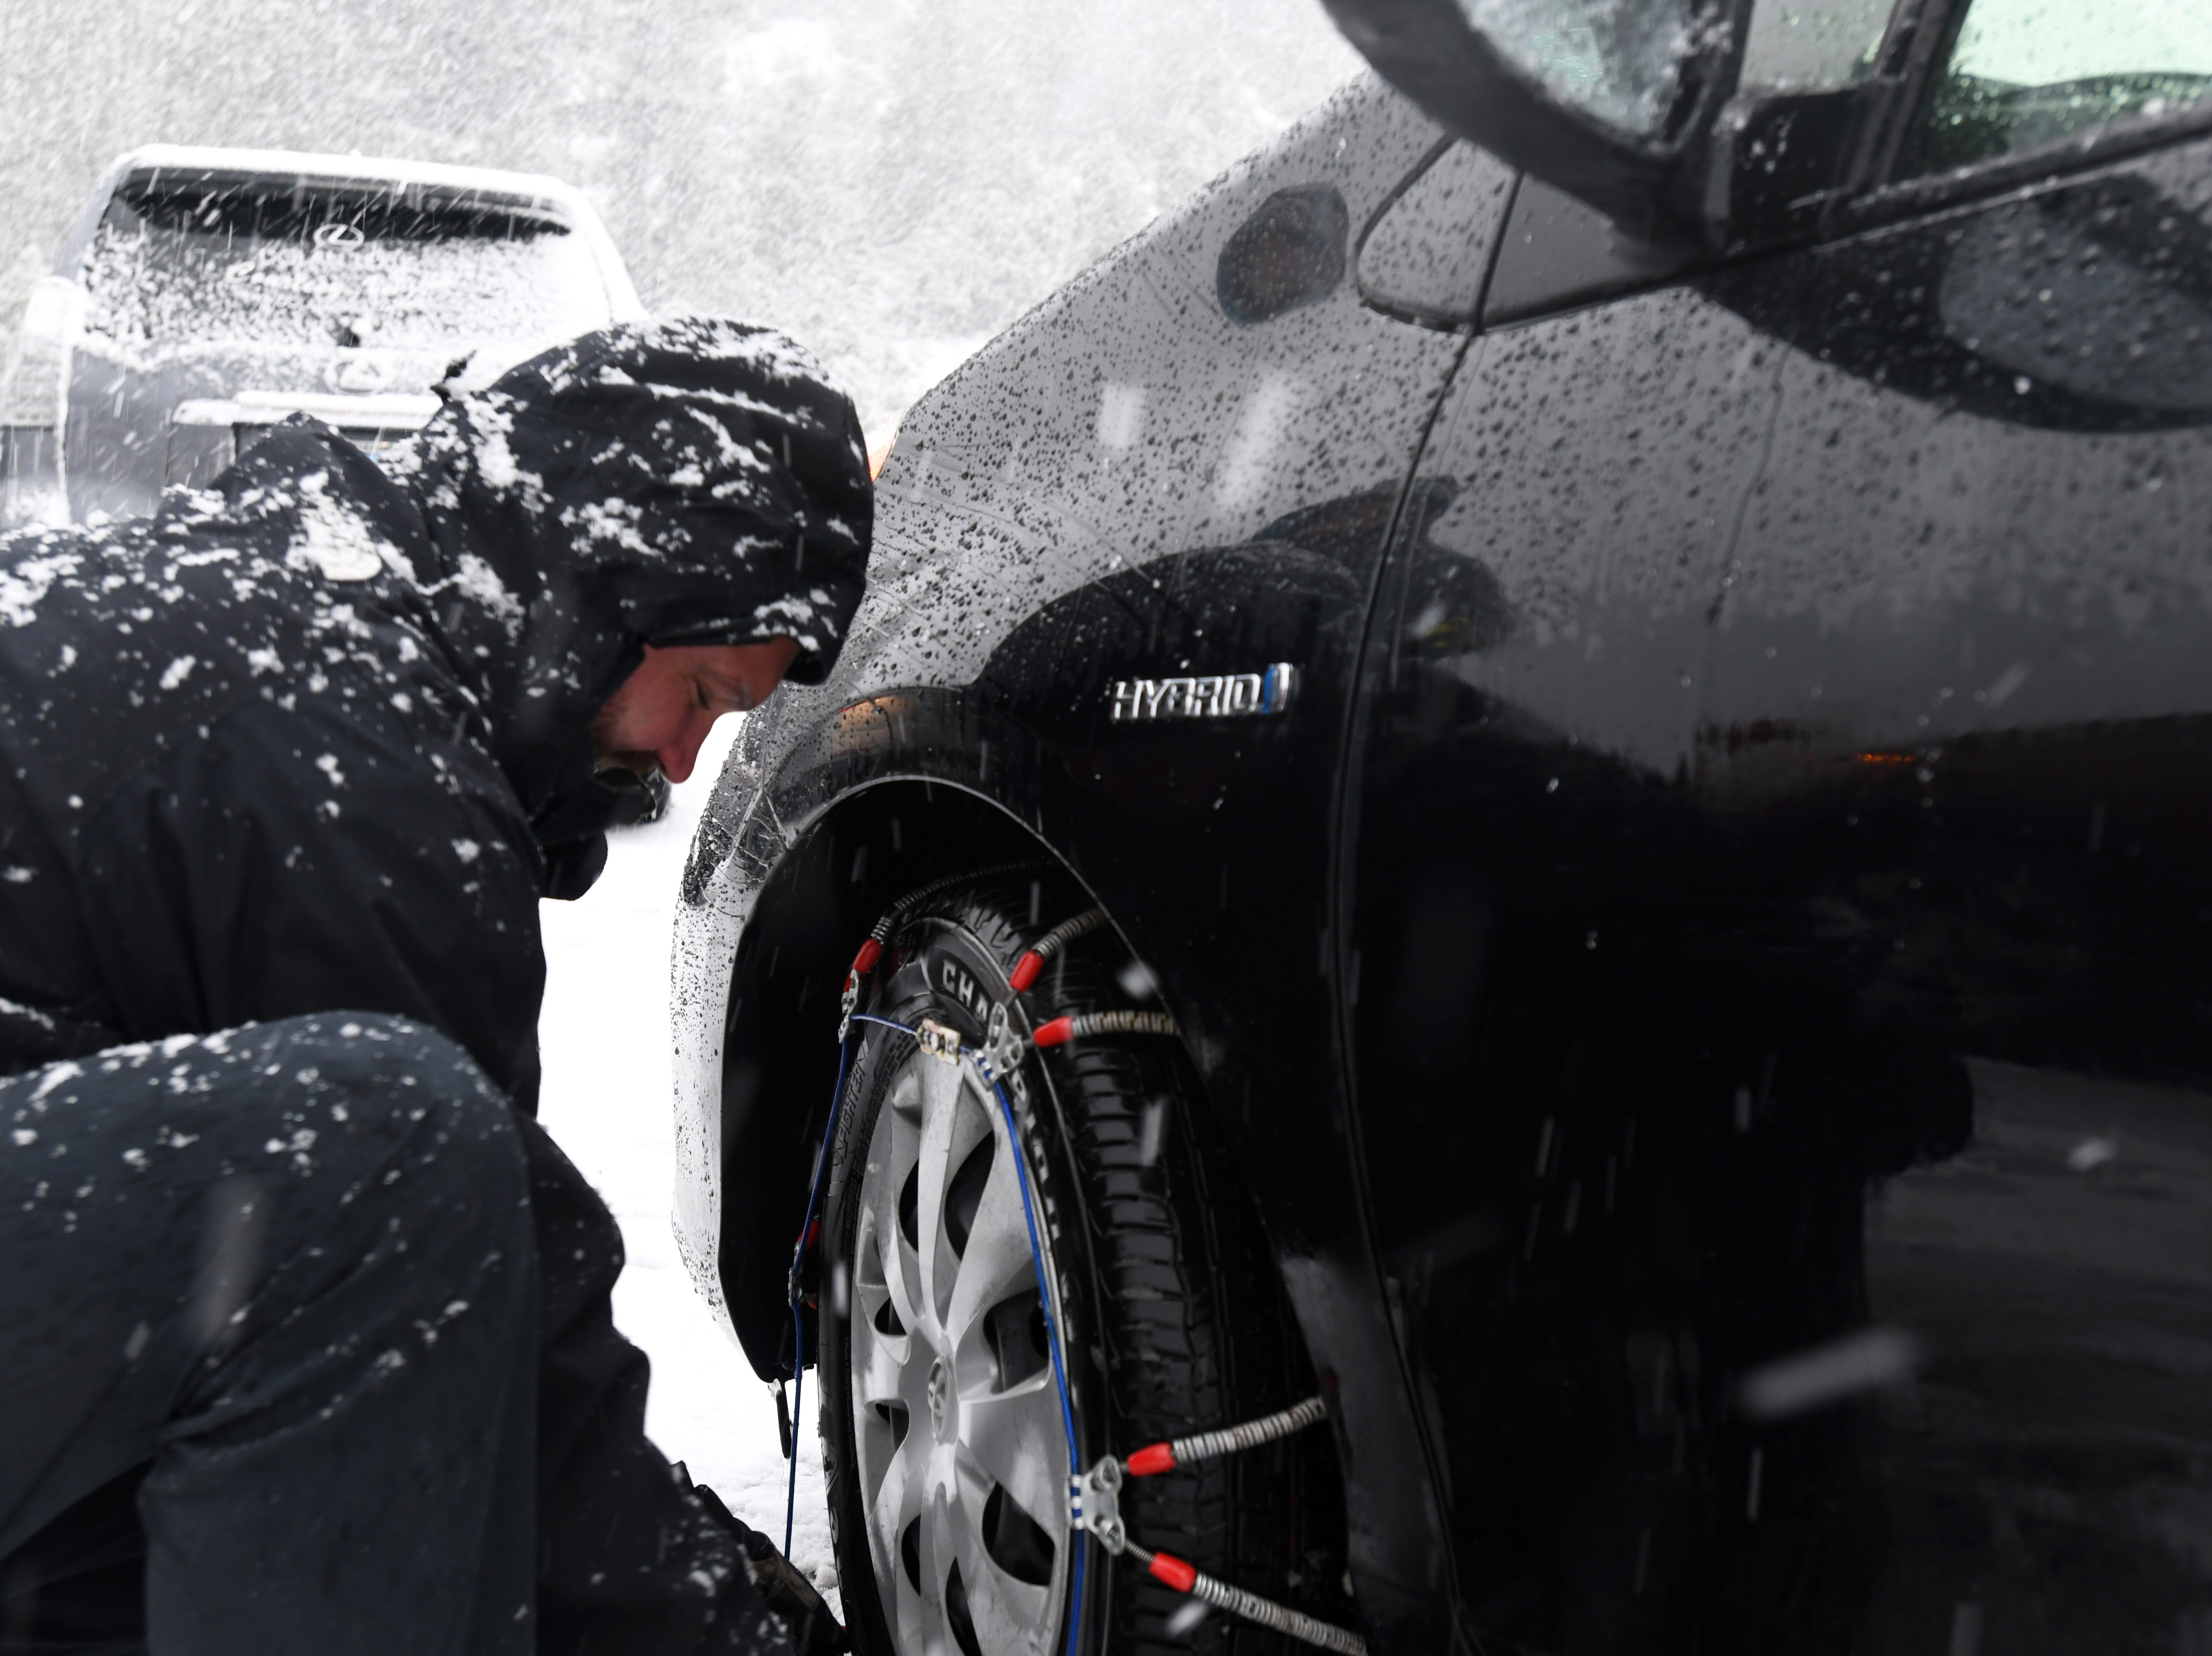 Tim Brink, 43, installs tire chains on his car as heavy snow falls on the Mt. Rose Highway on Christmas Eve 2018.